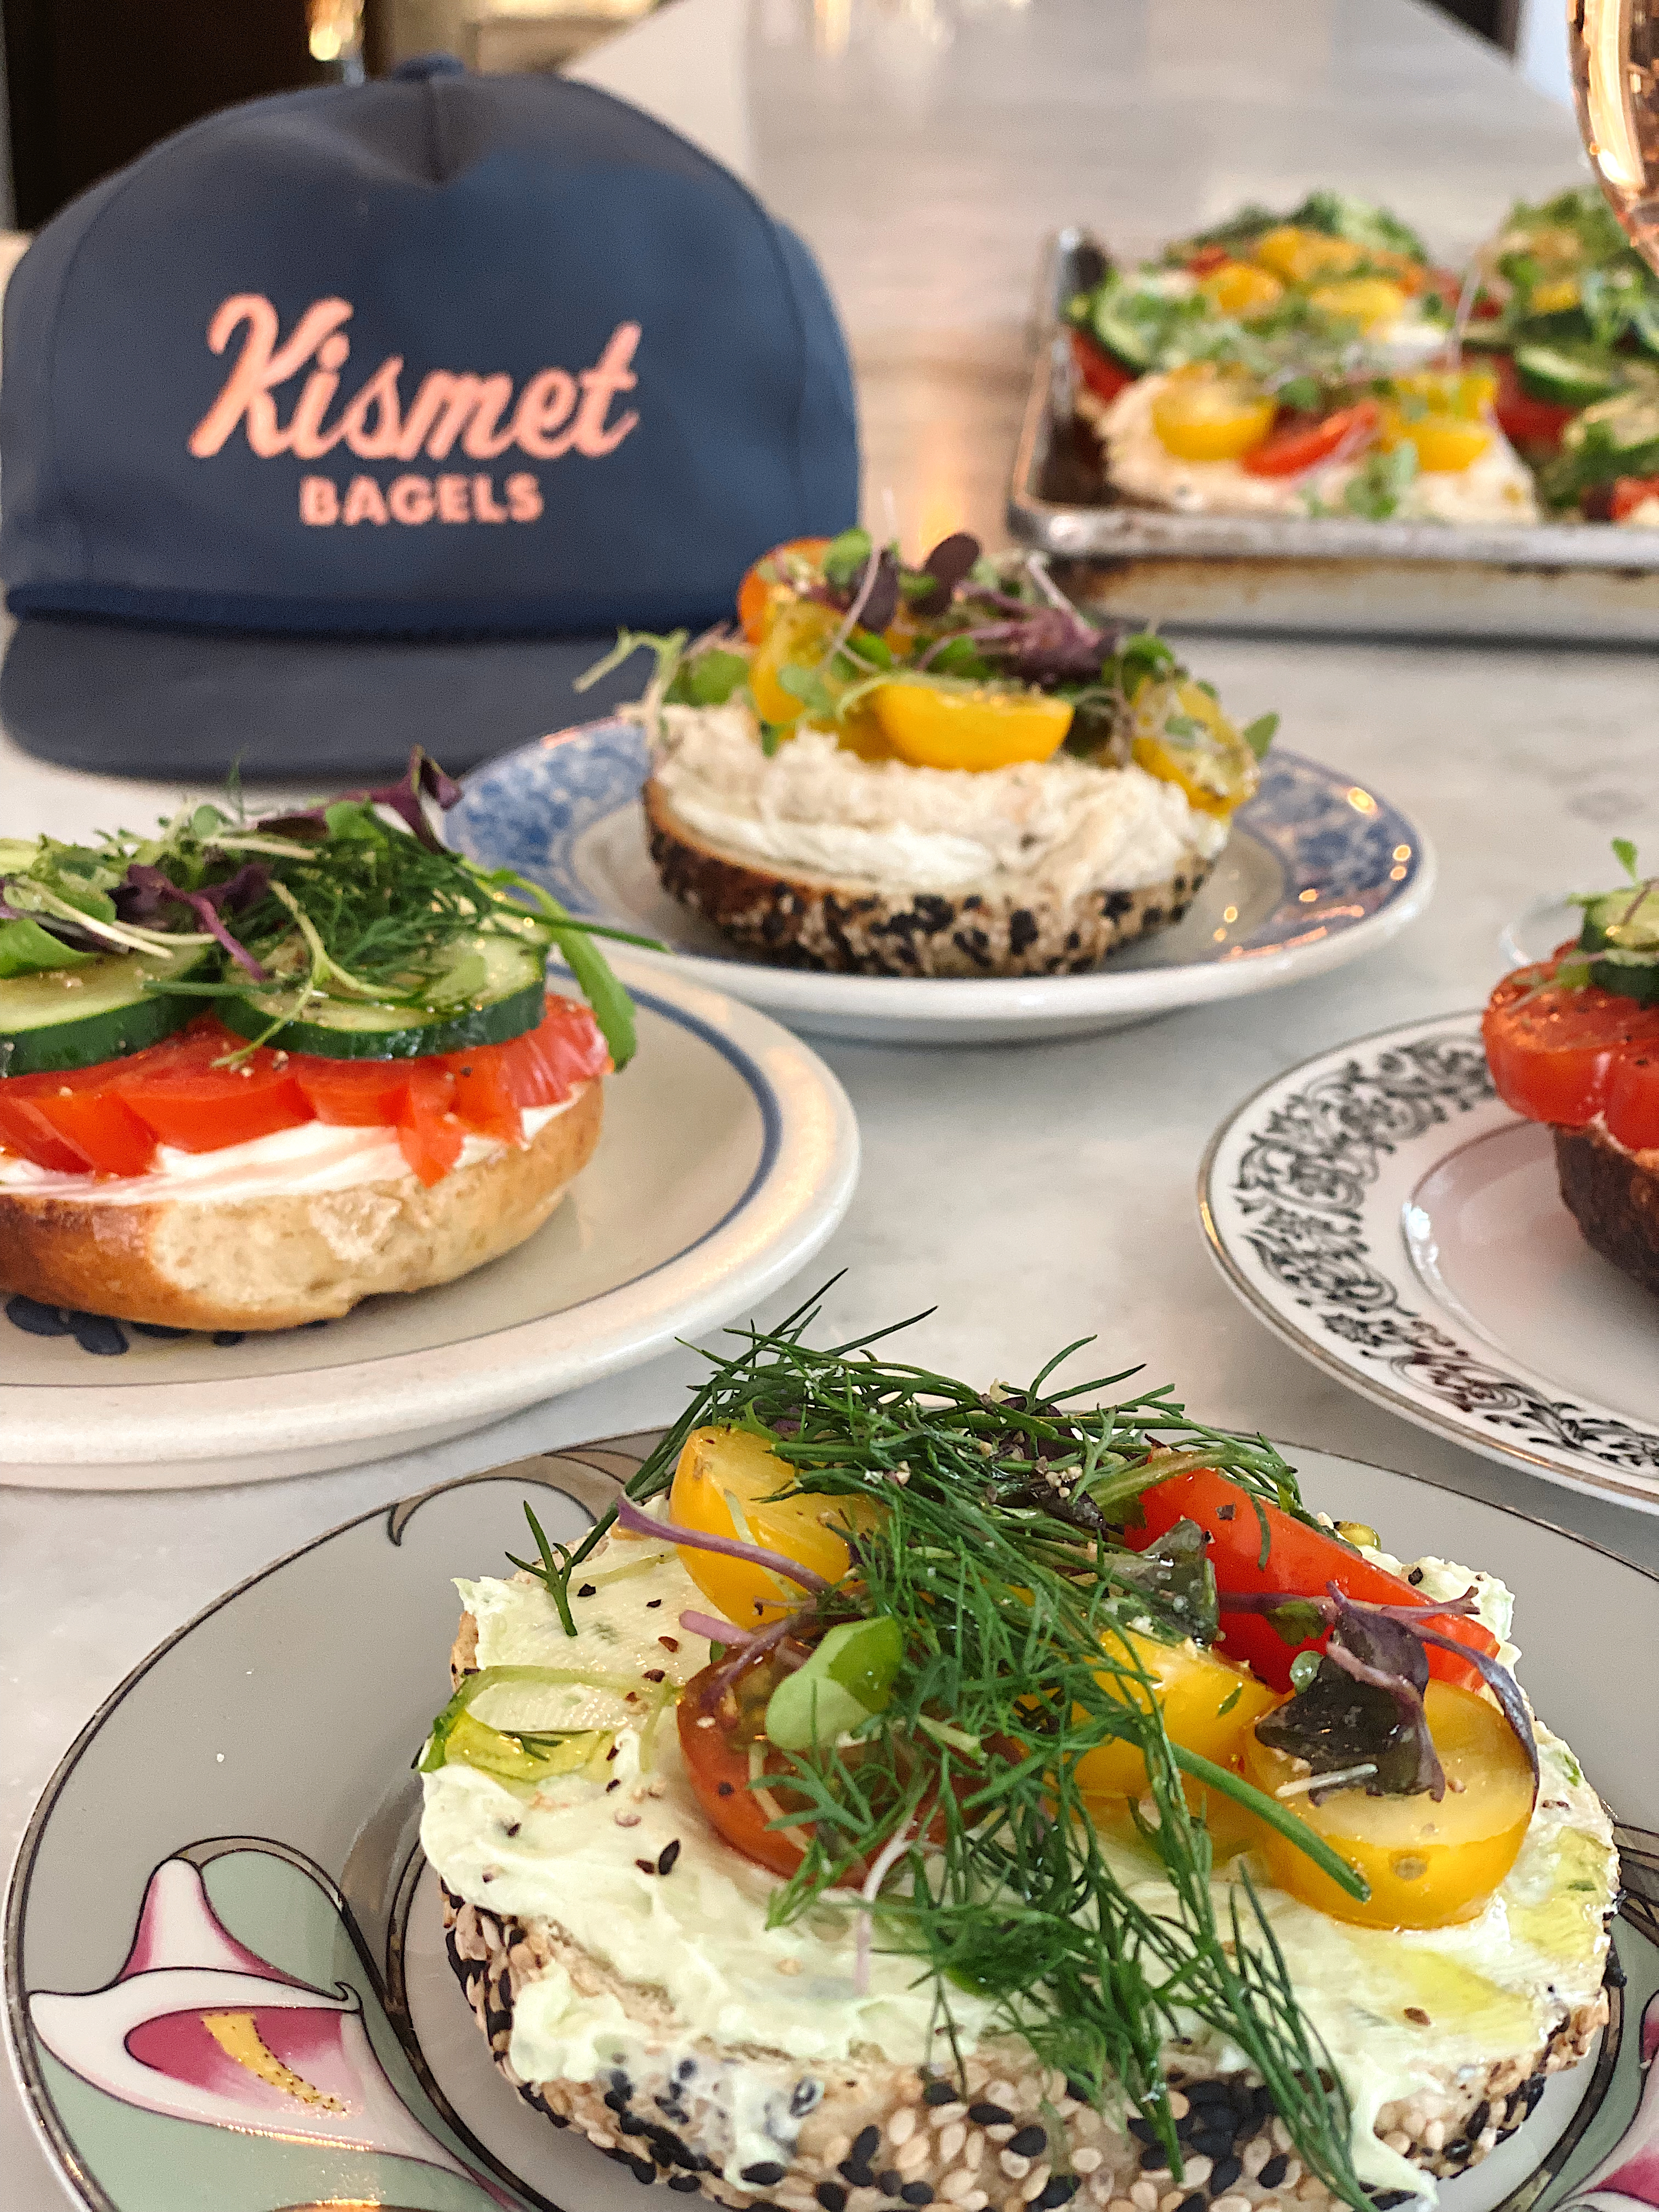 three different open-faced bagels with a kismet bagels hat in the background